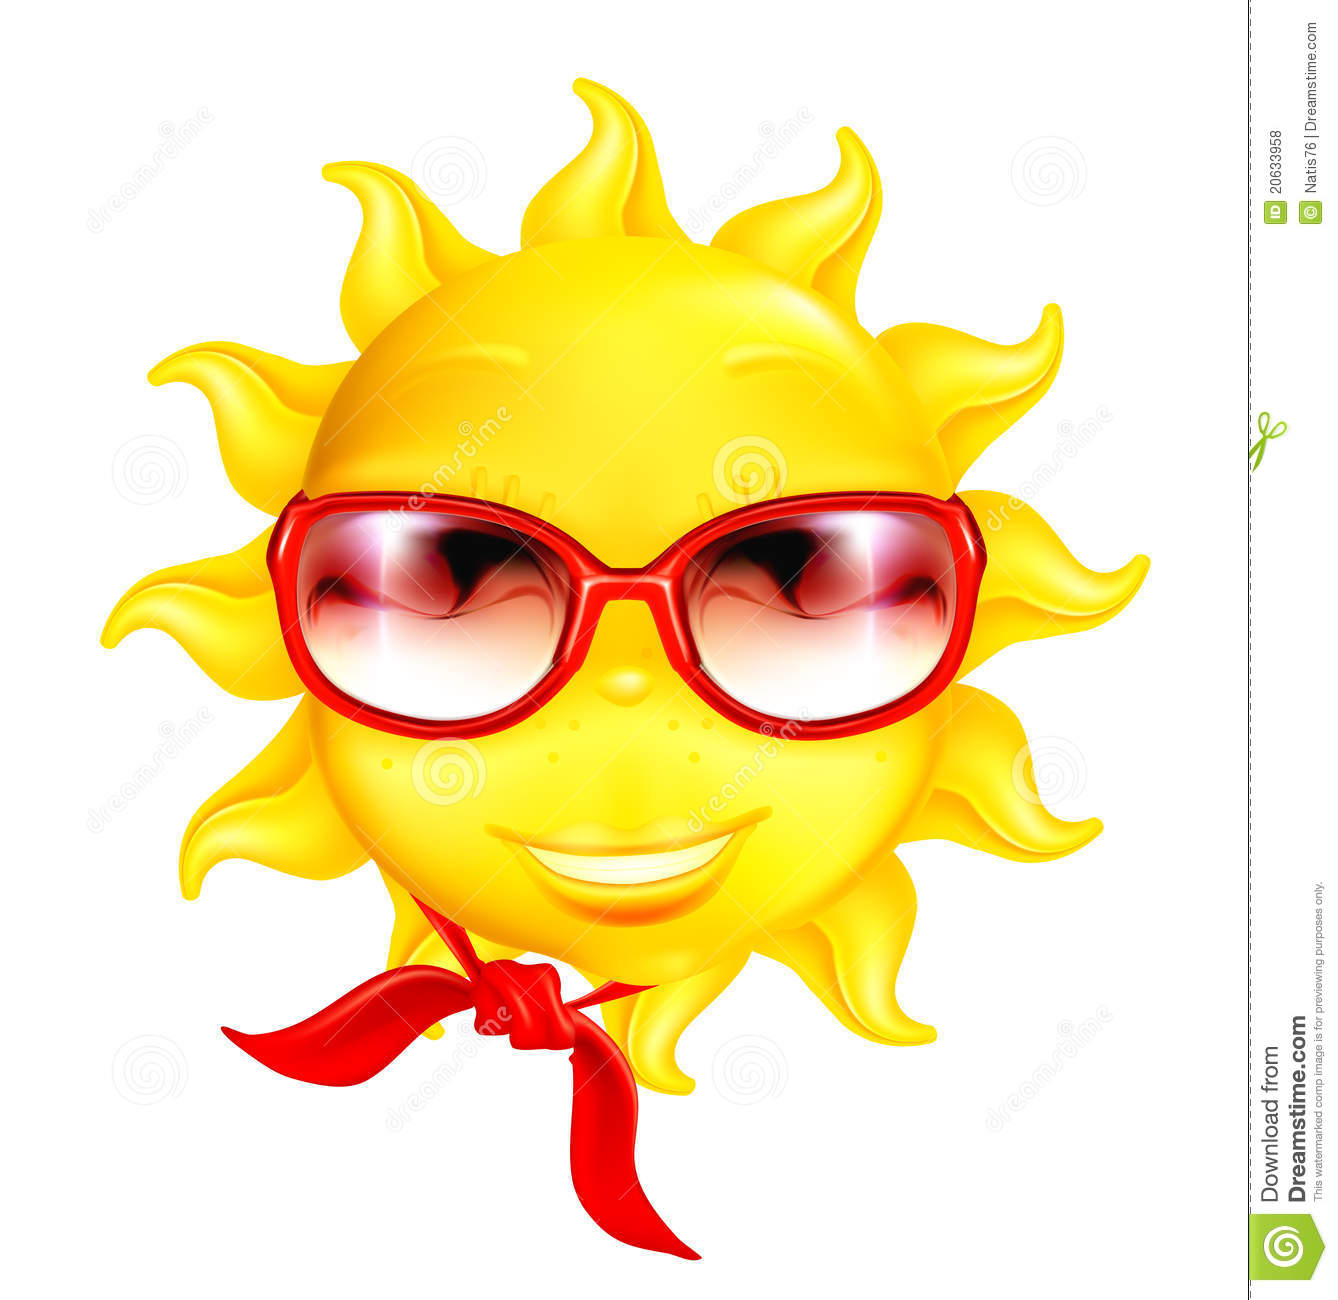 Fun Sun Royalty Free Stock Photos Image 20633958